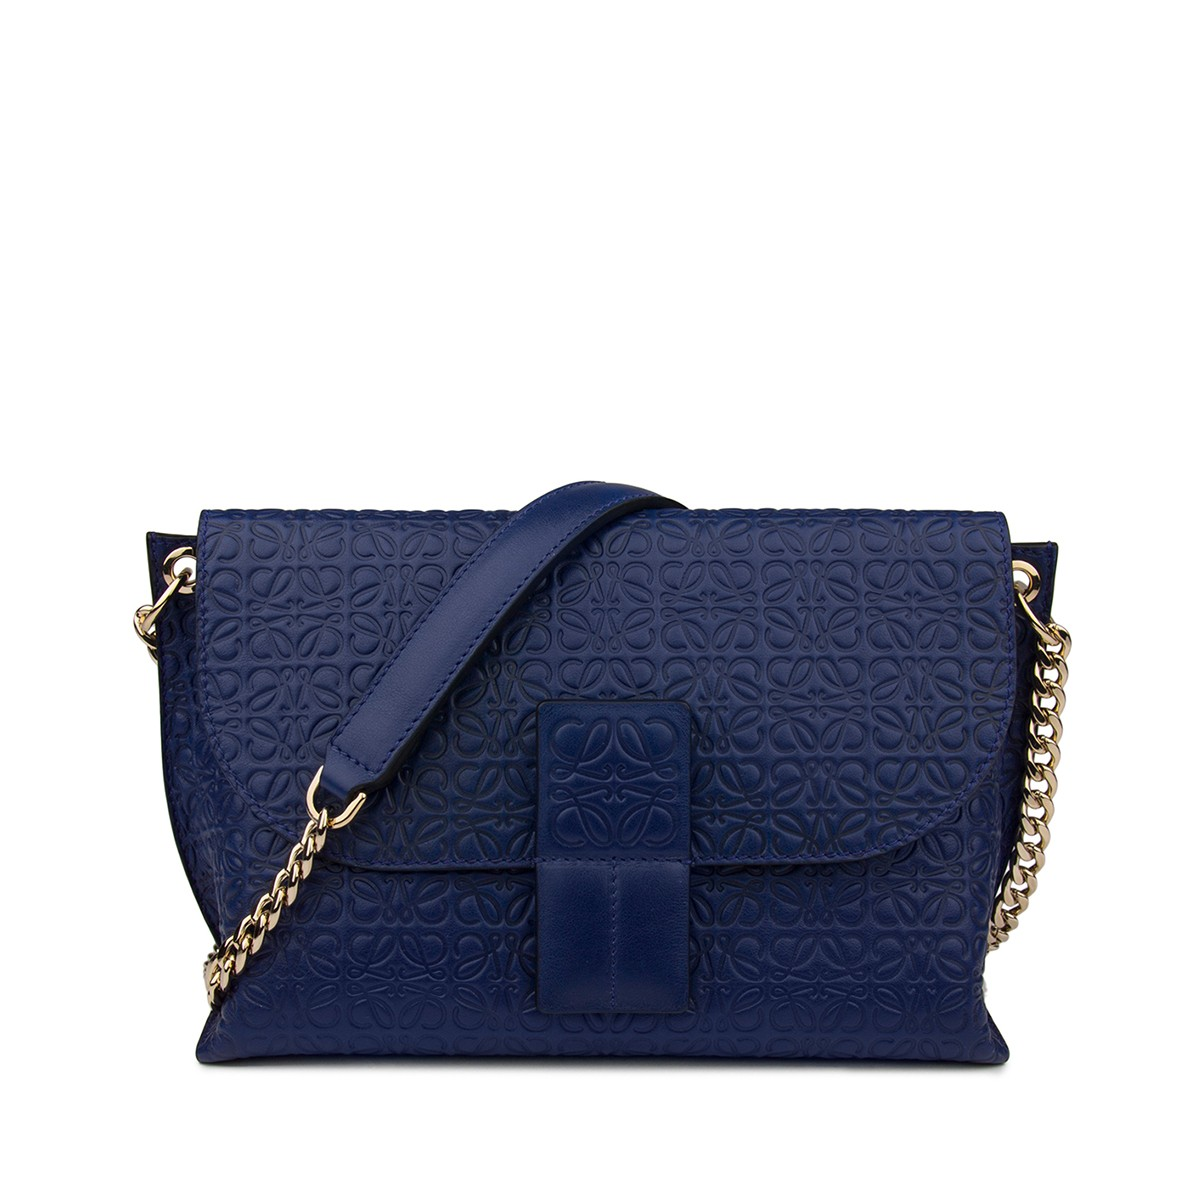 Avenue Bag in Marine